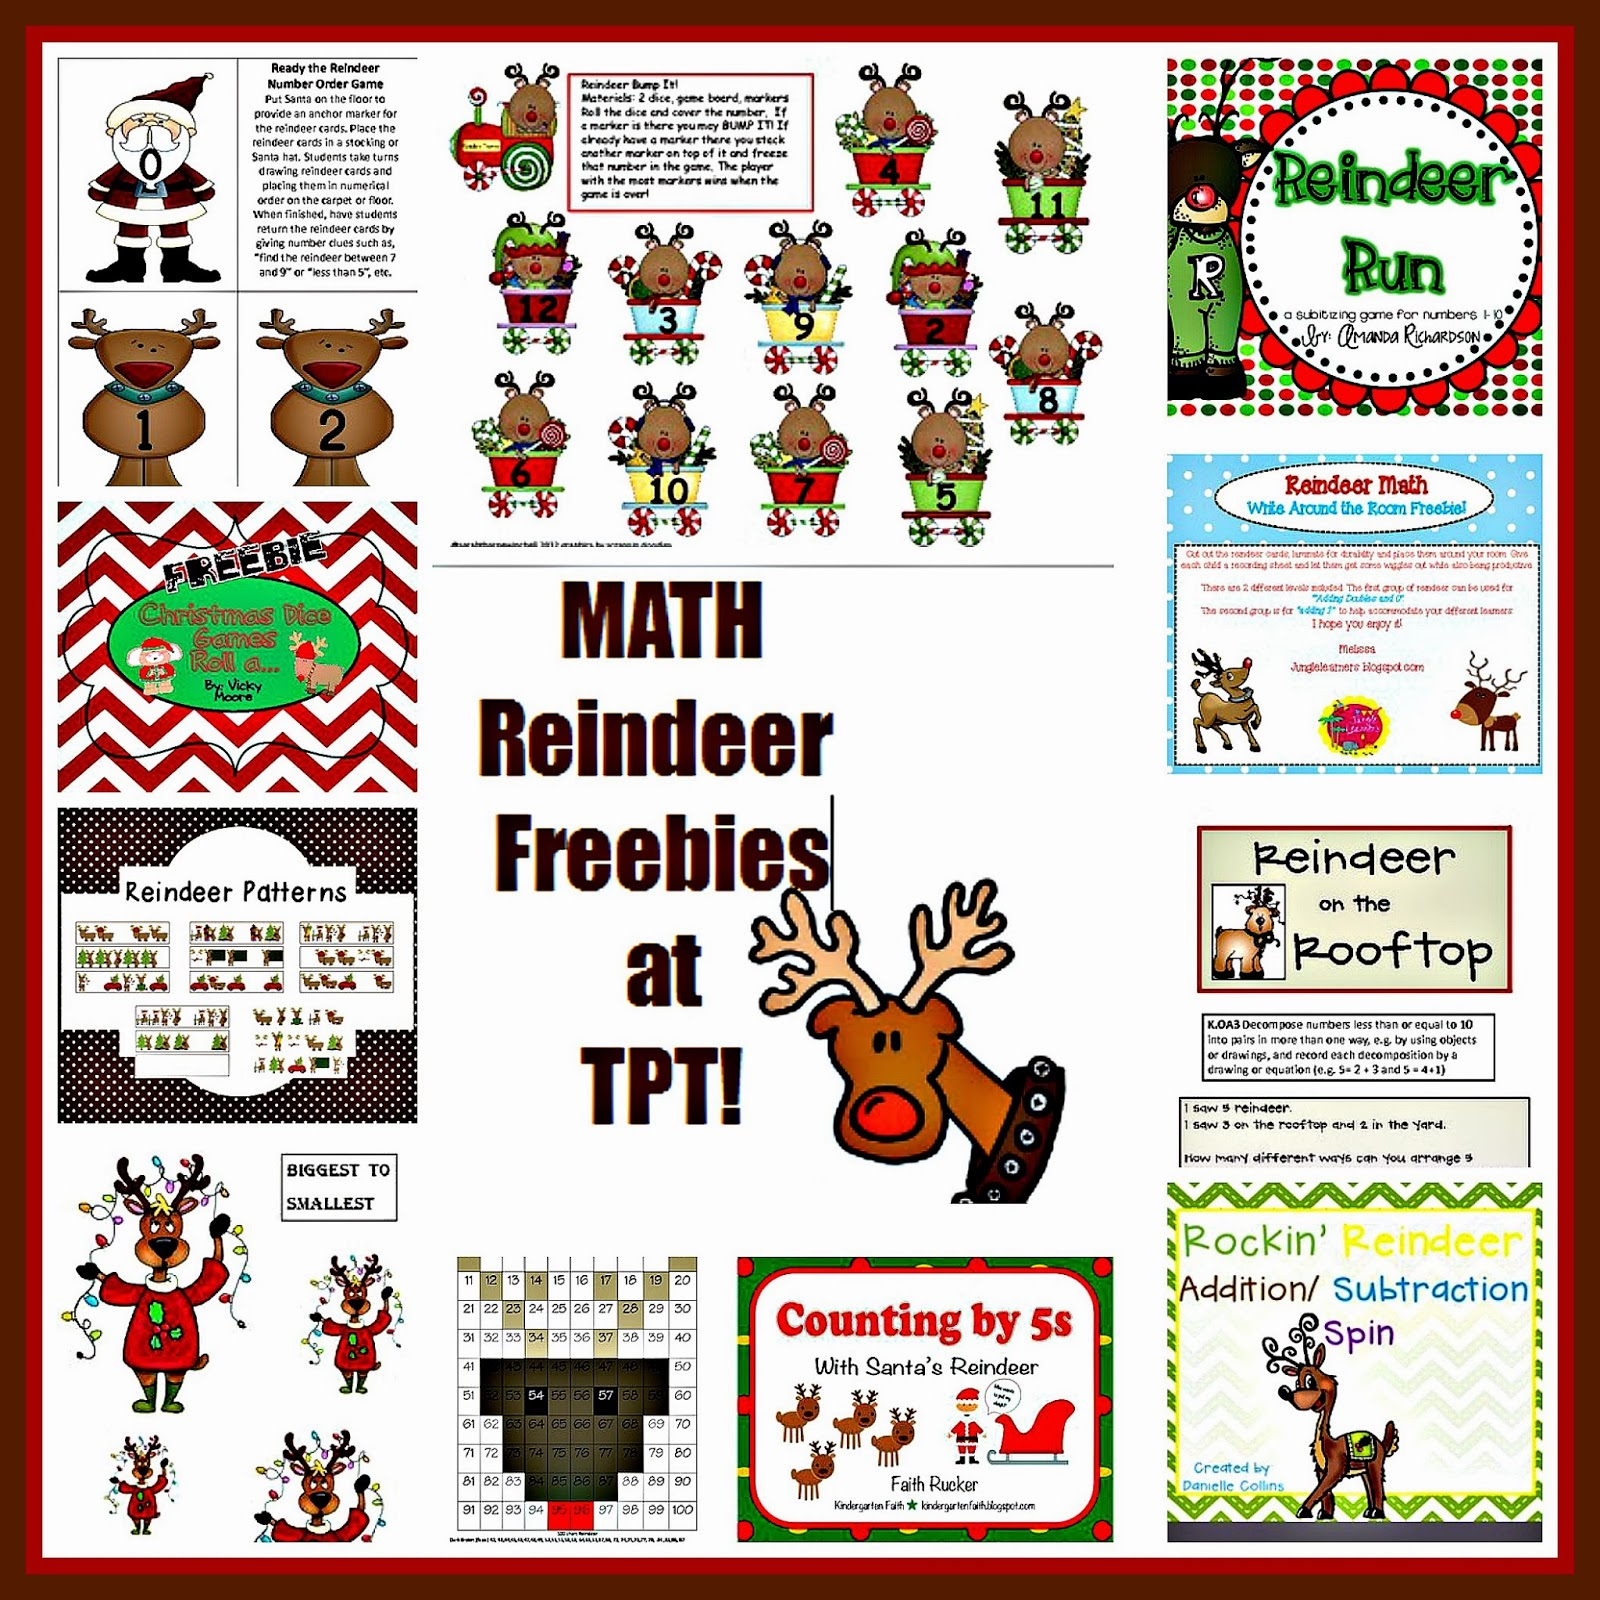 Reindeer freebies